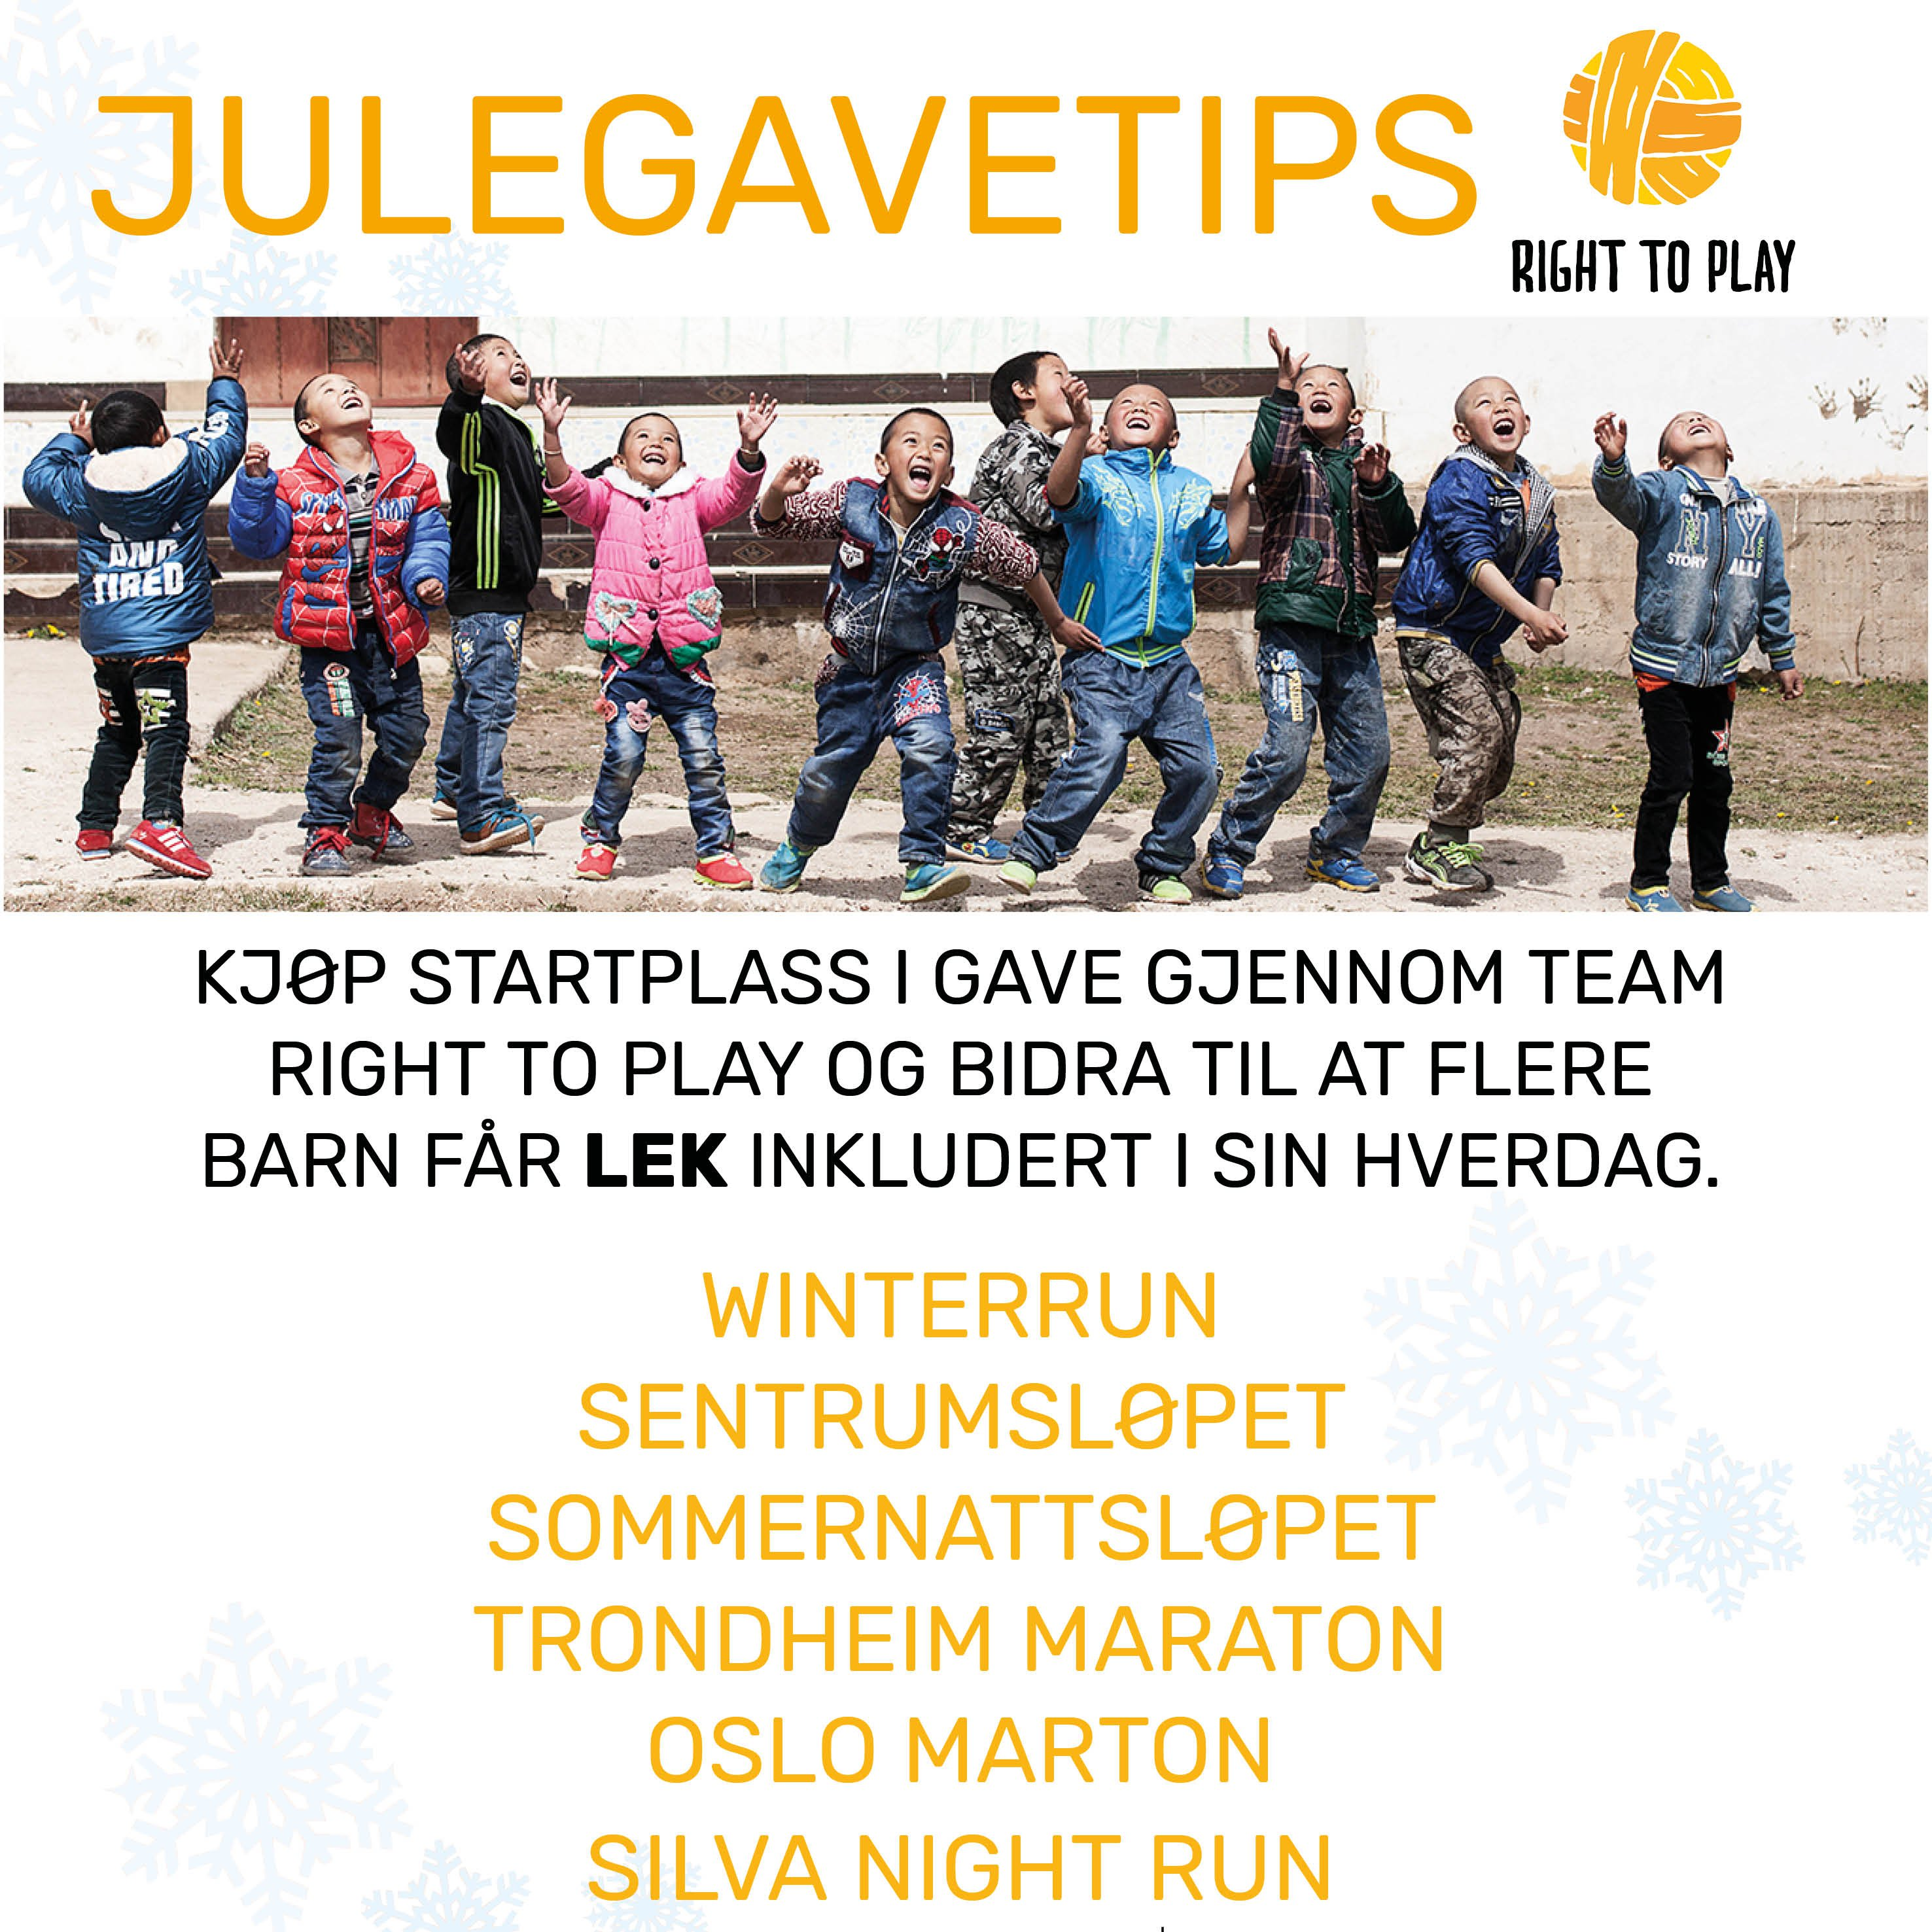 Julegavetips TEAM RIGHT TO PLAY.jpg